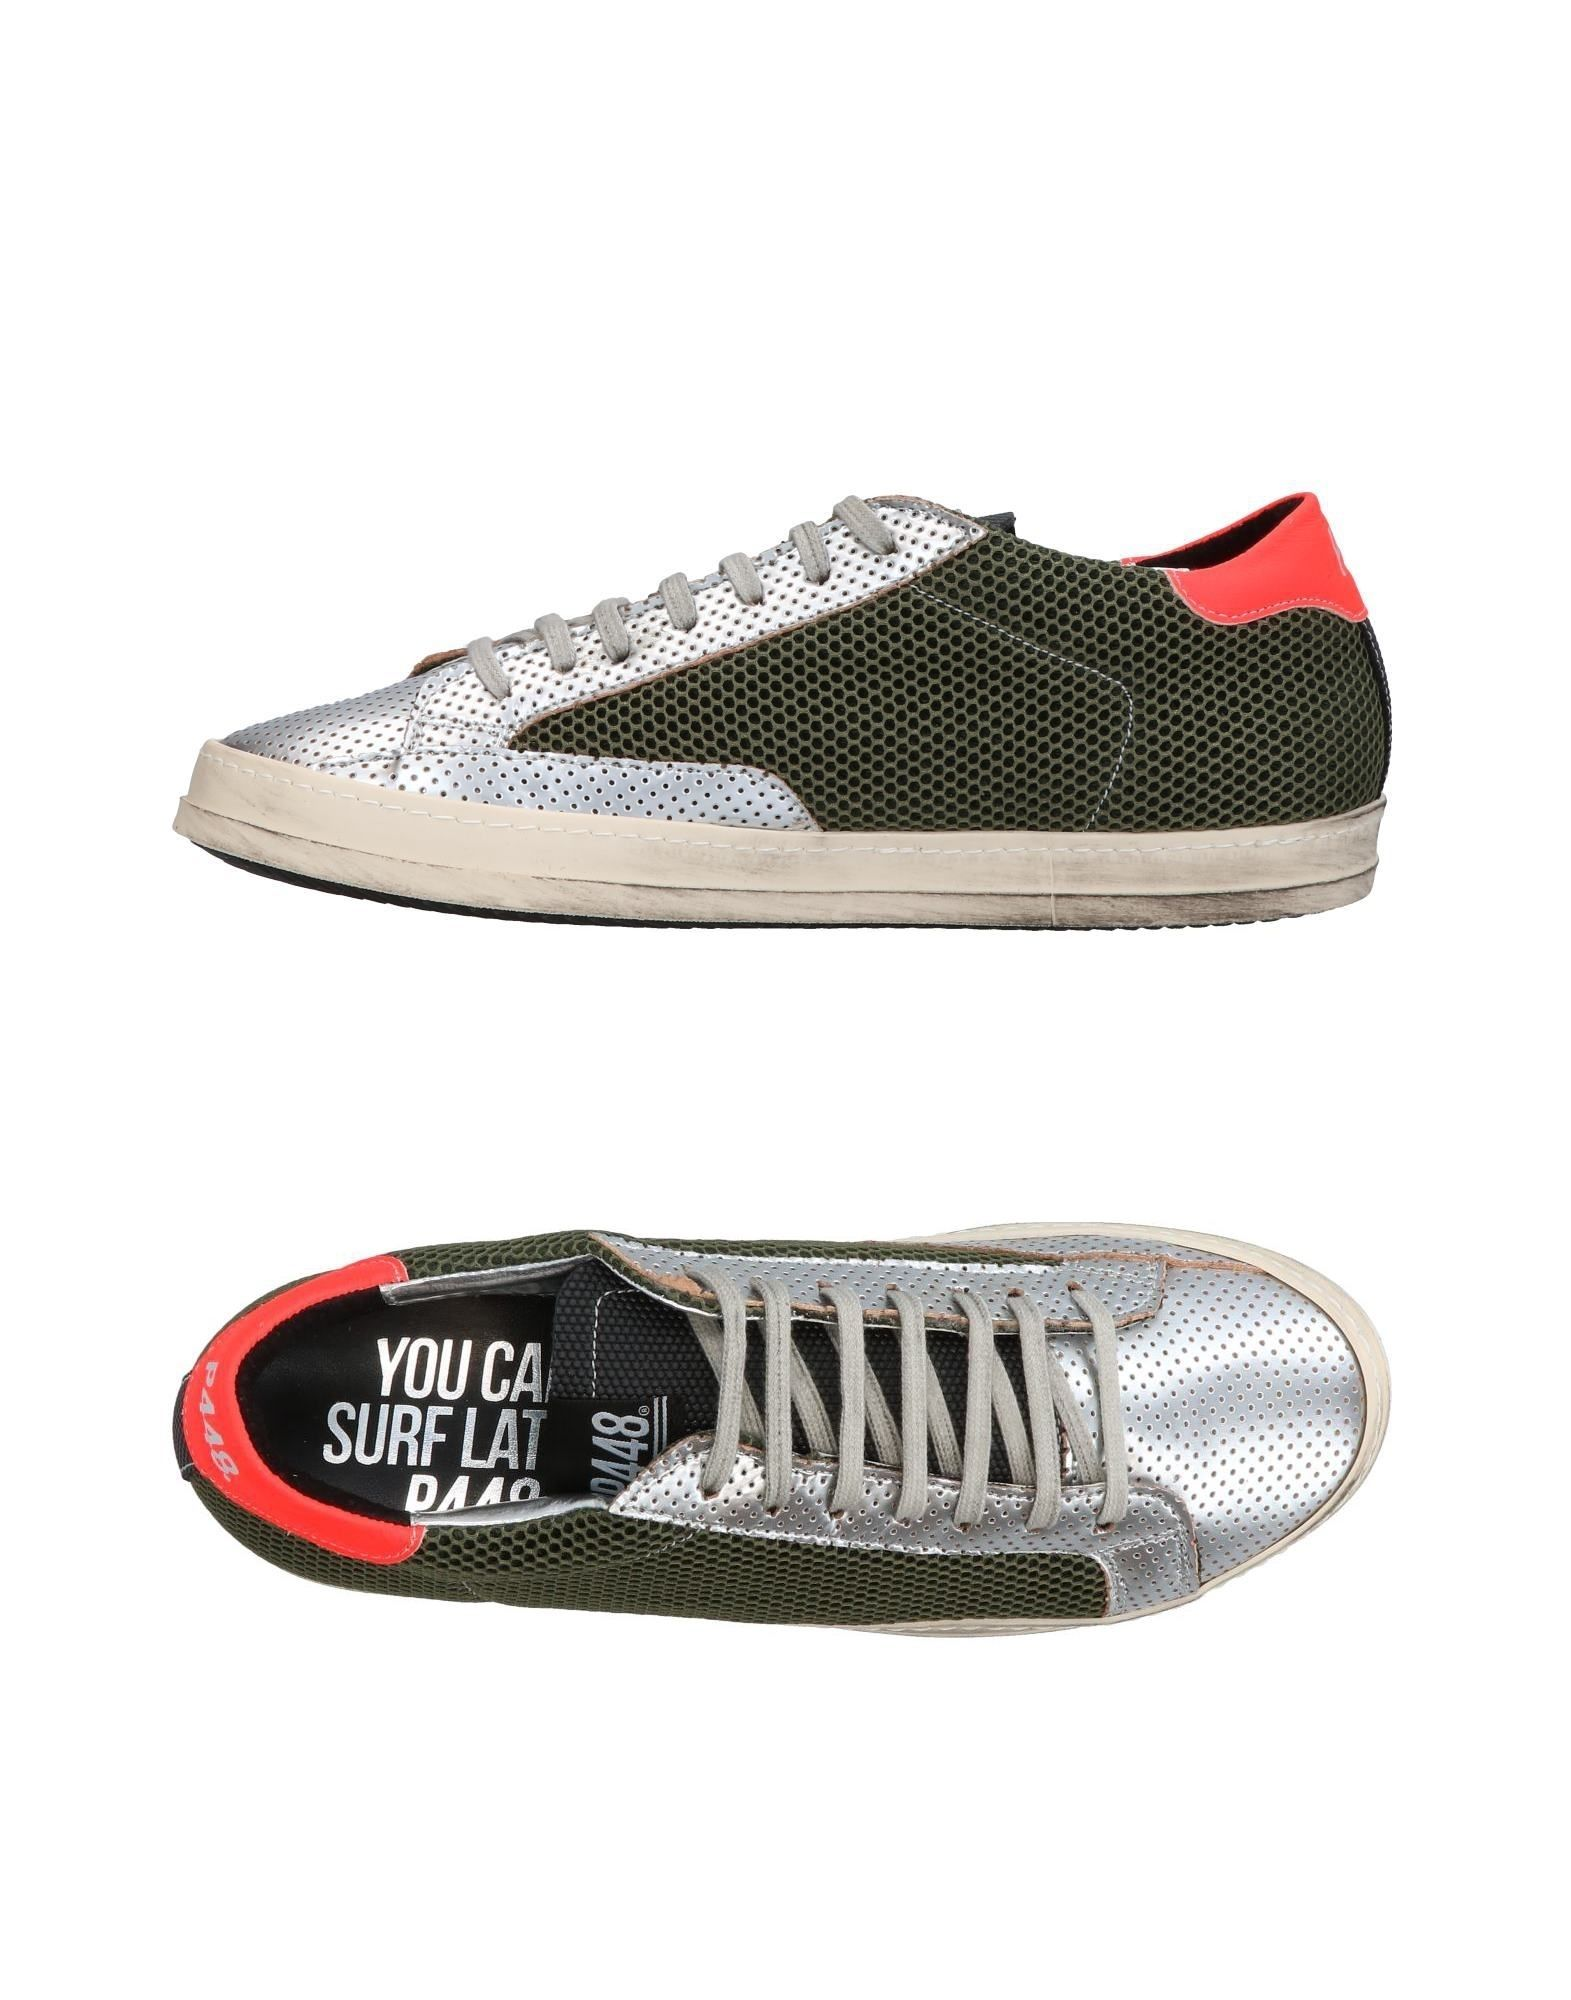 Moda Sneakers P448 Uomo - 11353234VS